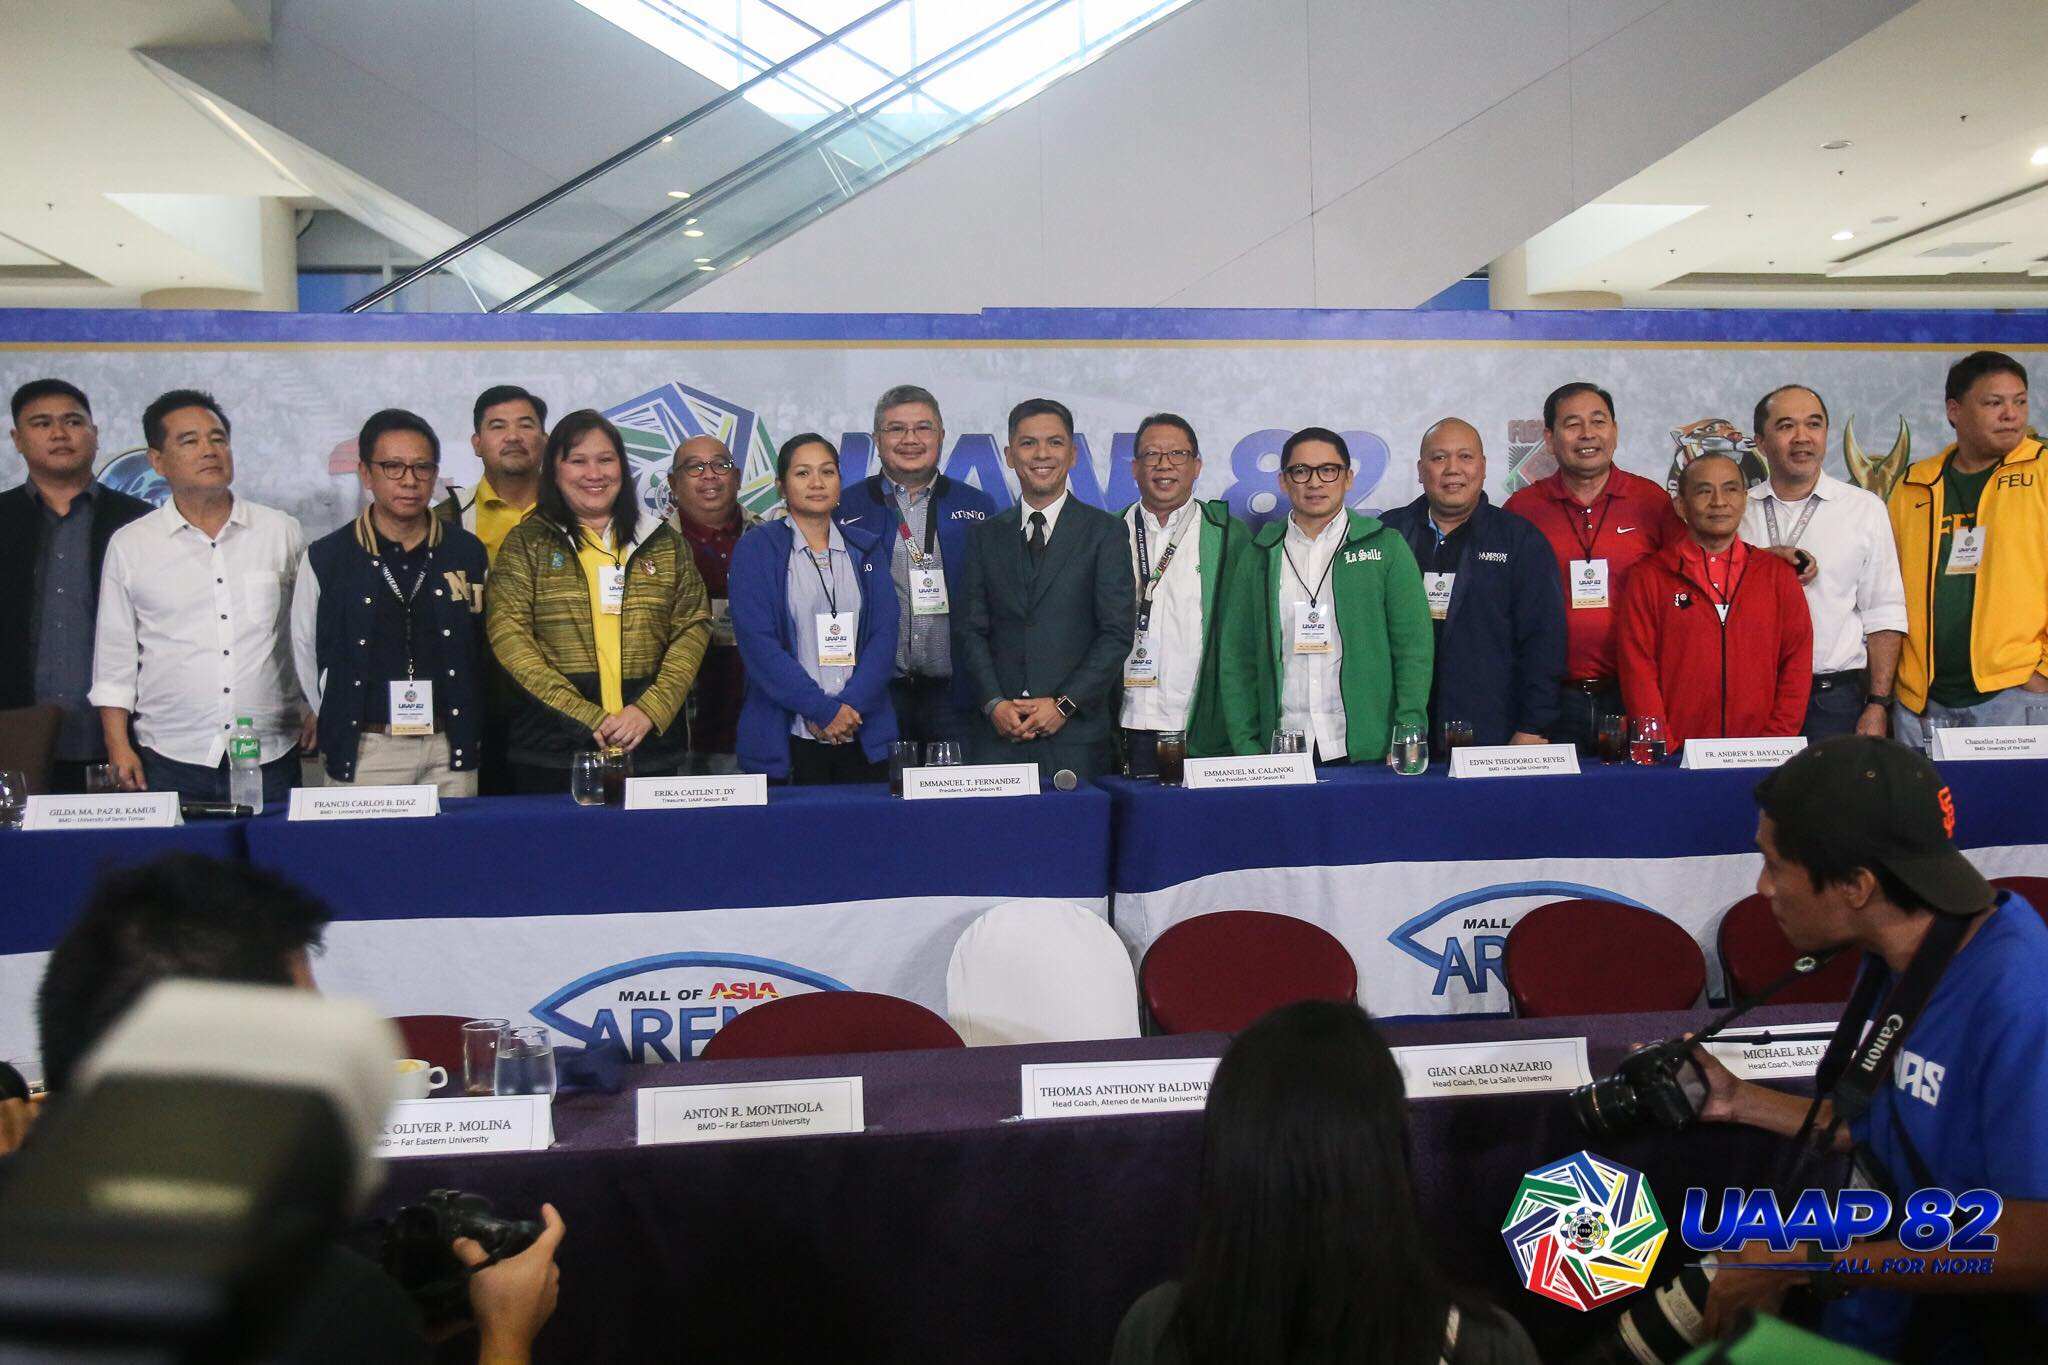 Tiebreaker Times UAAP promotes 3x3 as medal sport, adds beach volleyball to high school division 3x3 Basketball Beach Volleyball News Tennis UAAP  UAAP Season 82 High School Beach Volleyball UAAP Season 82 3X3 Basketball UAAP Season 82 em fernandez